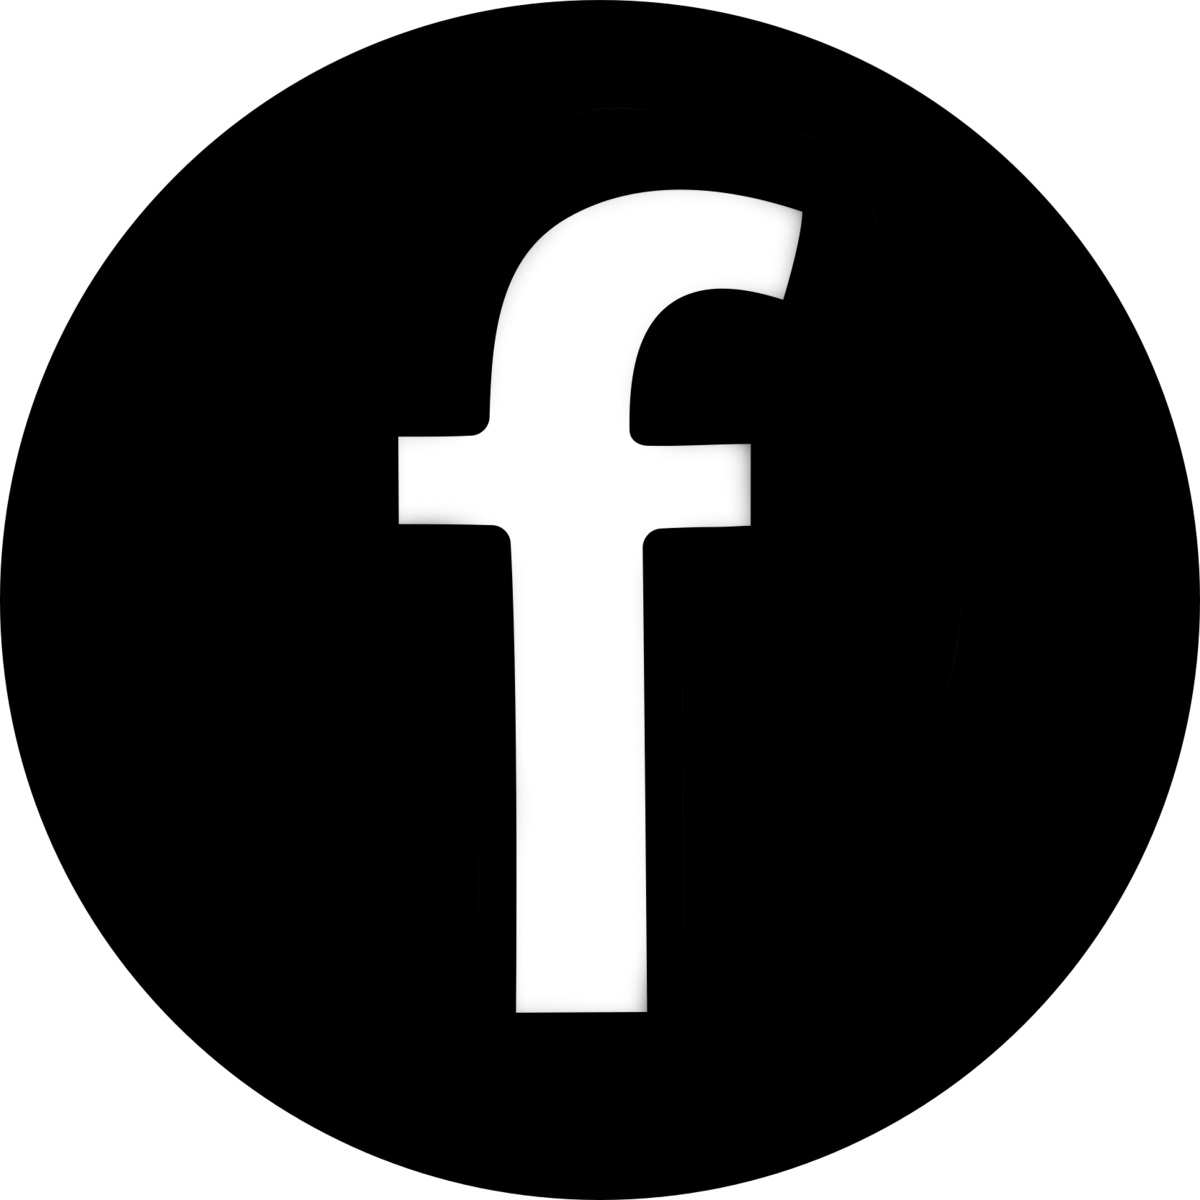 FACEBOOK LOGO PNG WHITE image galleries  imageKBm